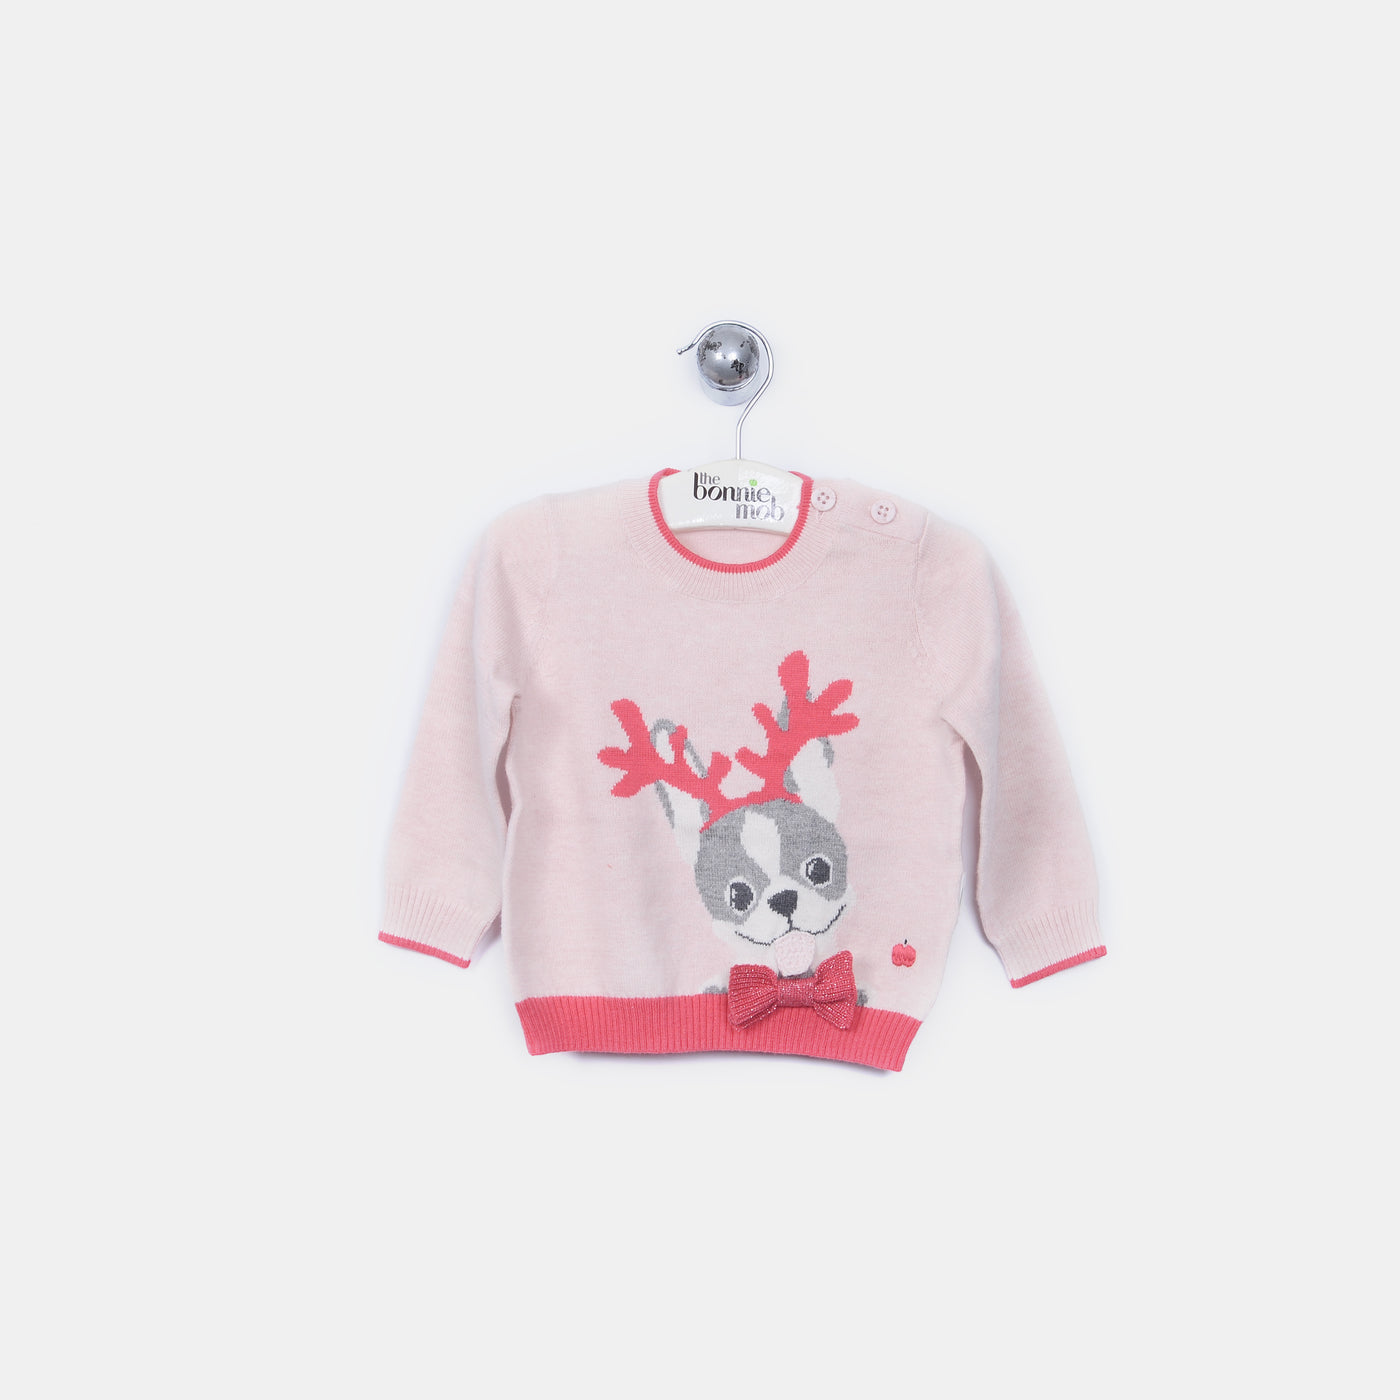 L-REMI - Reindeer Dog Jumper - Baby Girl - Pink calico